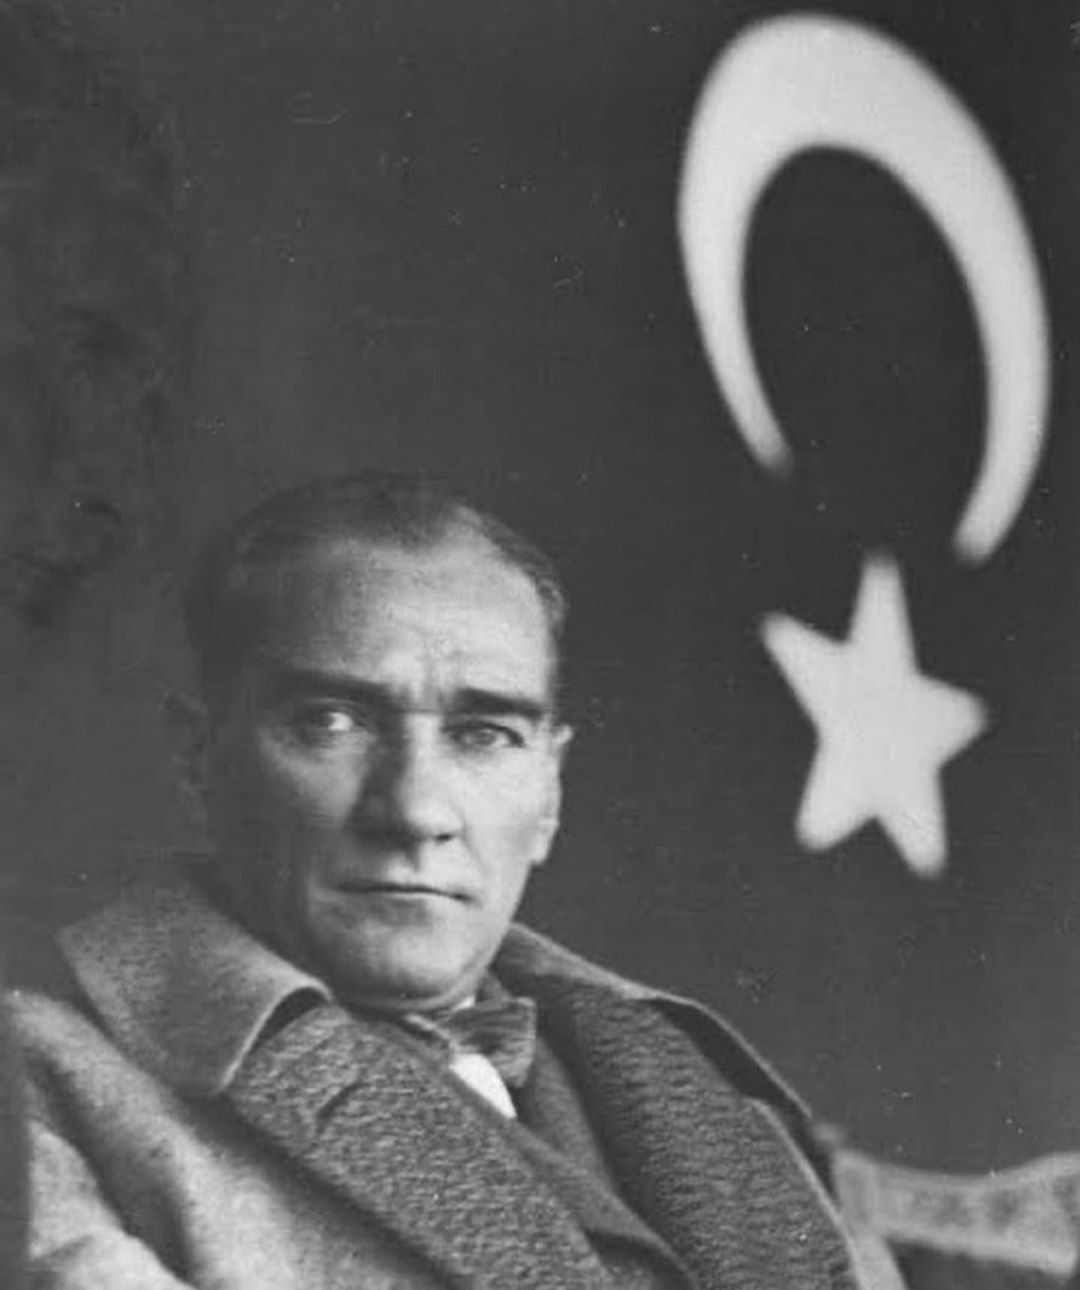 Pin on Atatürk